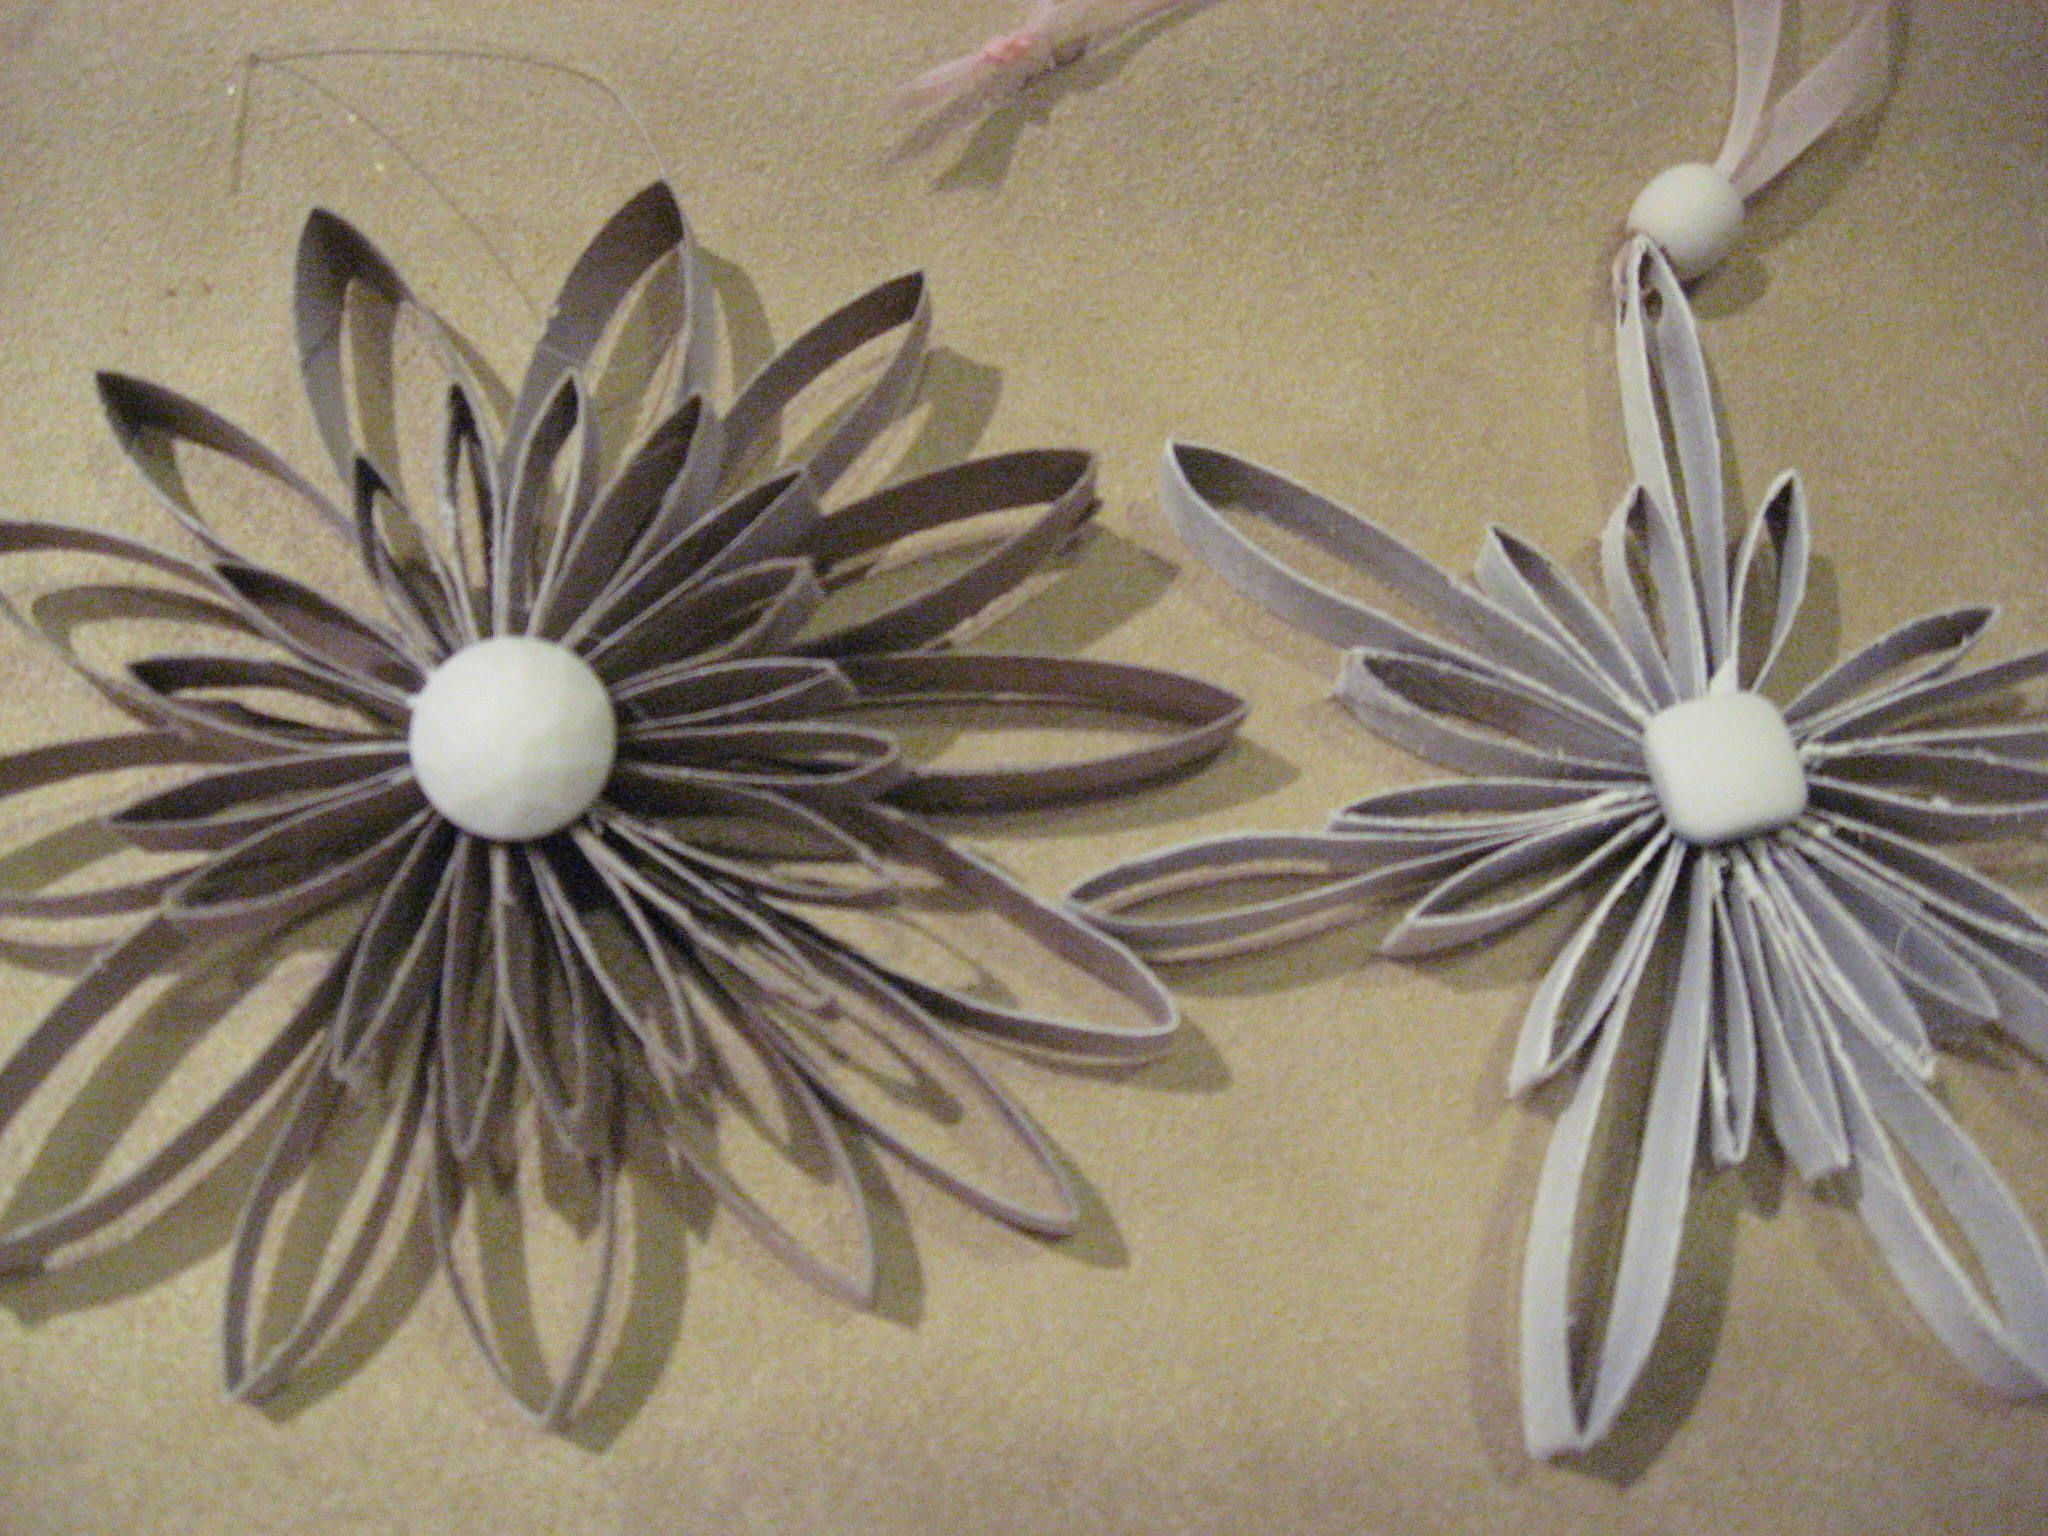 Toilet Paper Roll Snowflakes Uploaded By Sherry Curington